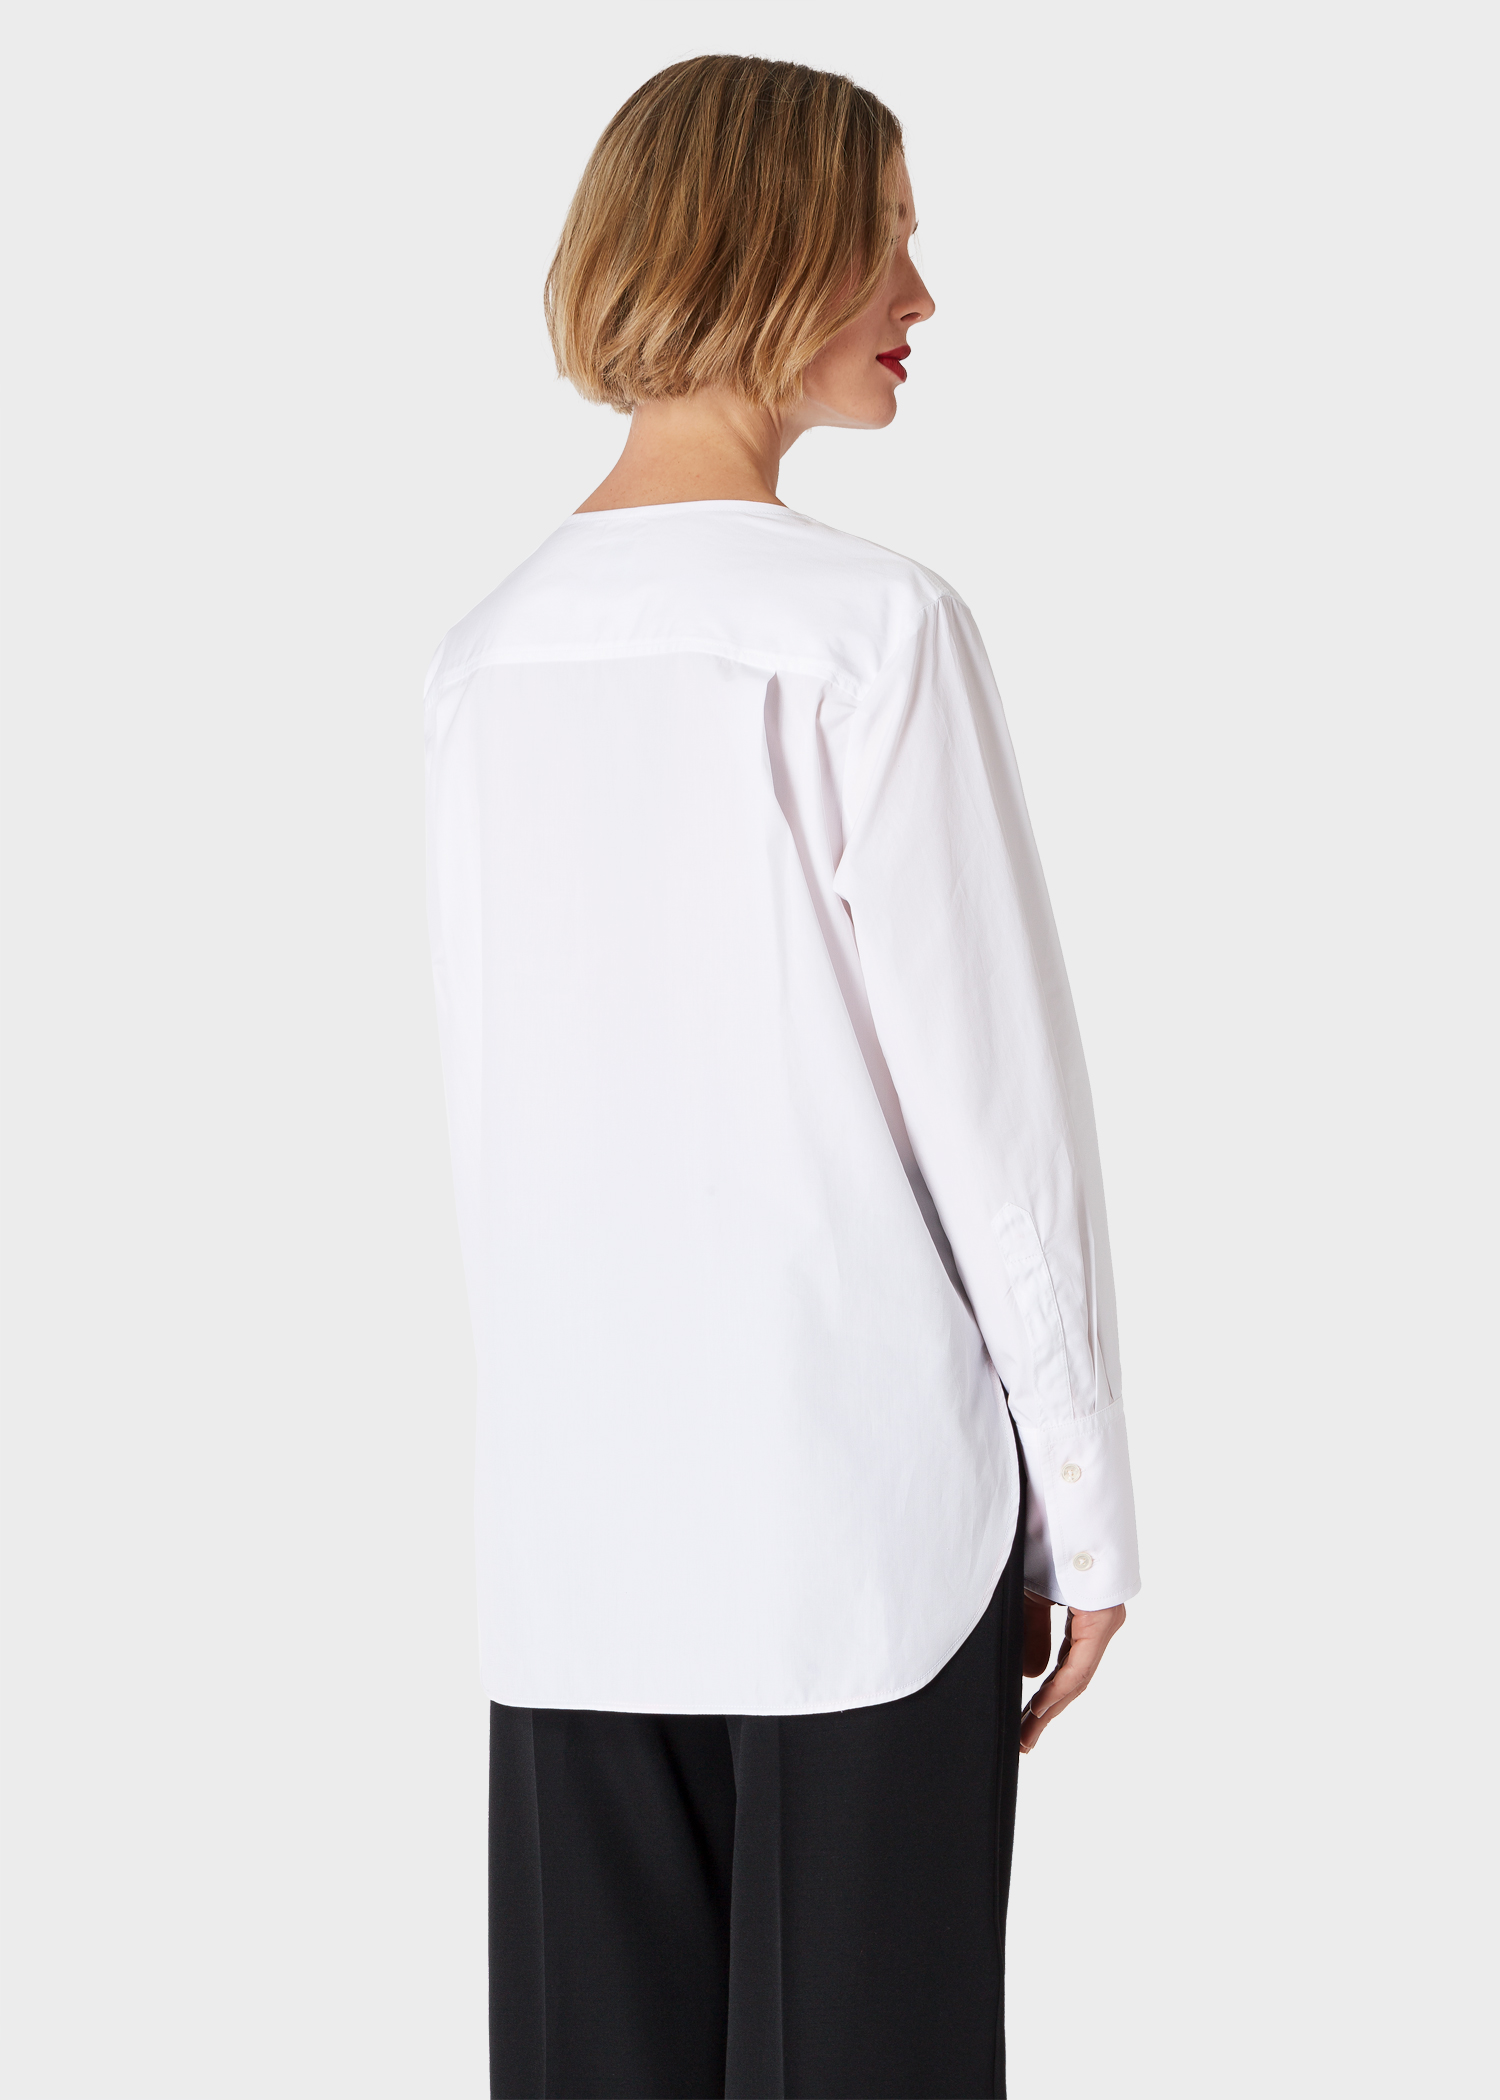 c9d4cace3e8 Model back close up - Women's White V-Neck Cotton Tunic Shirt Paul Smith